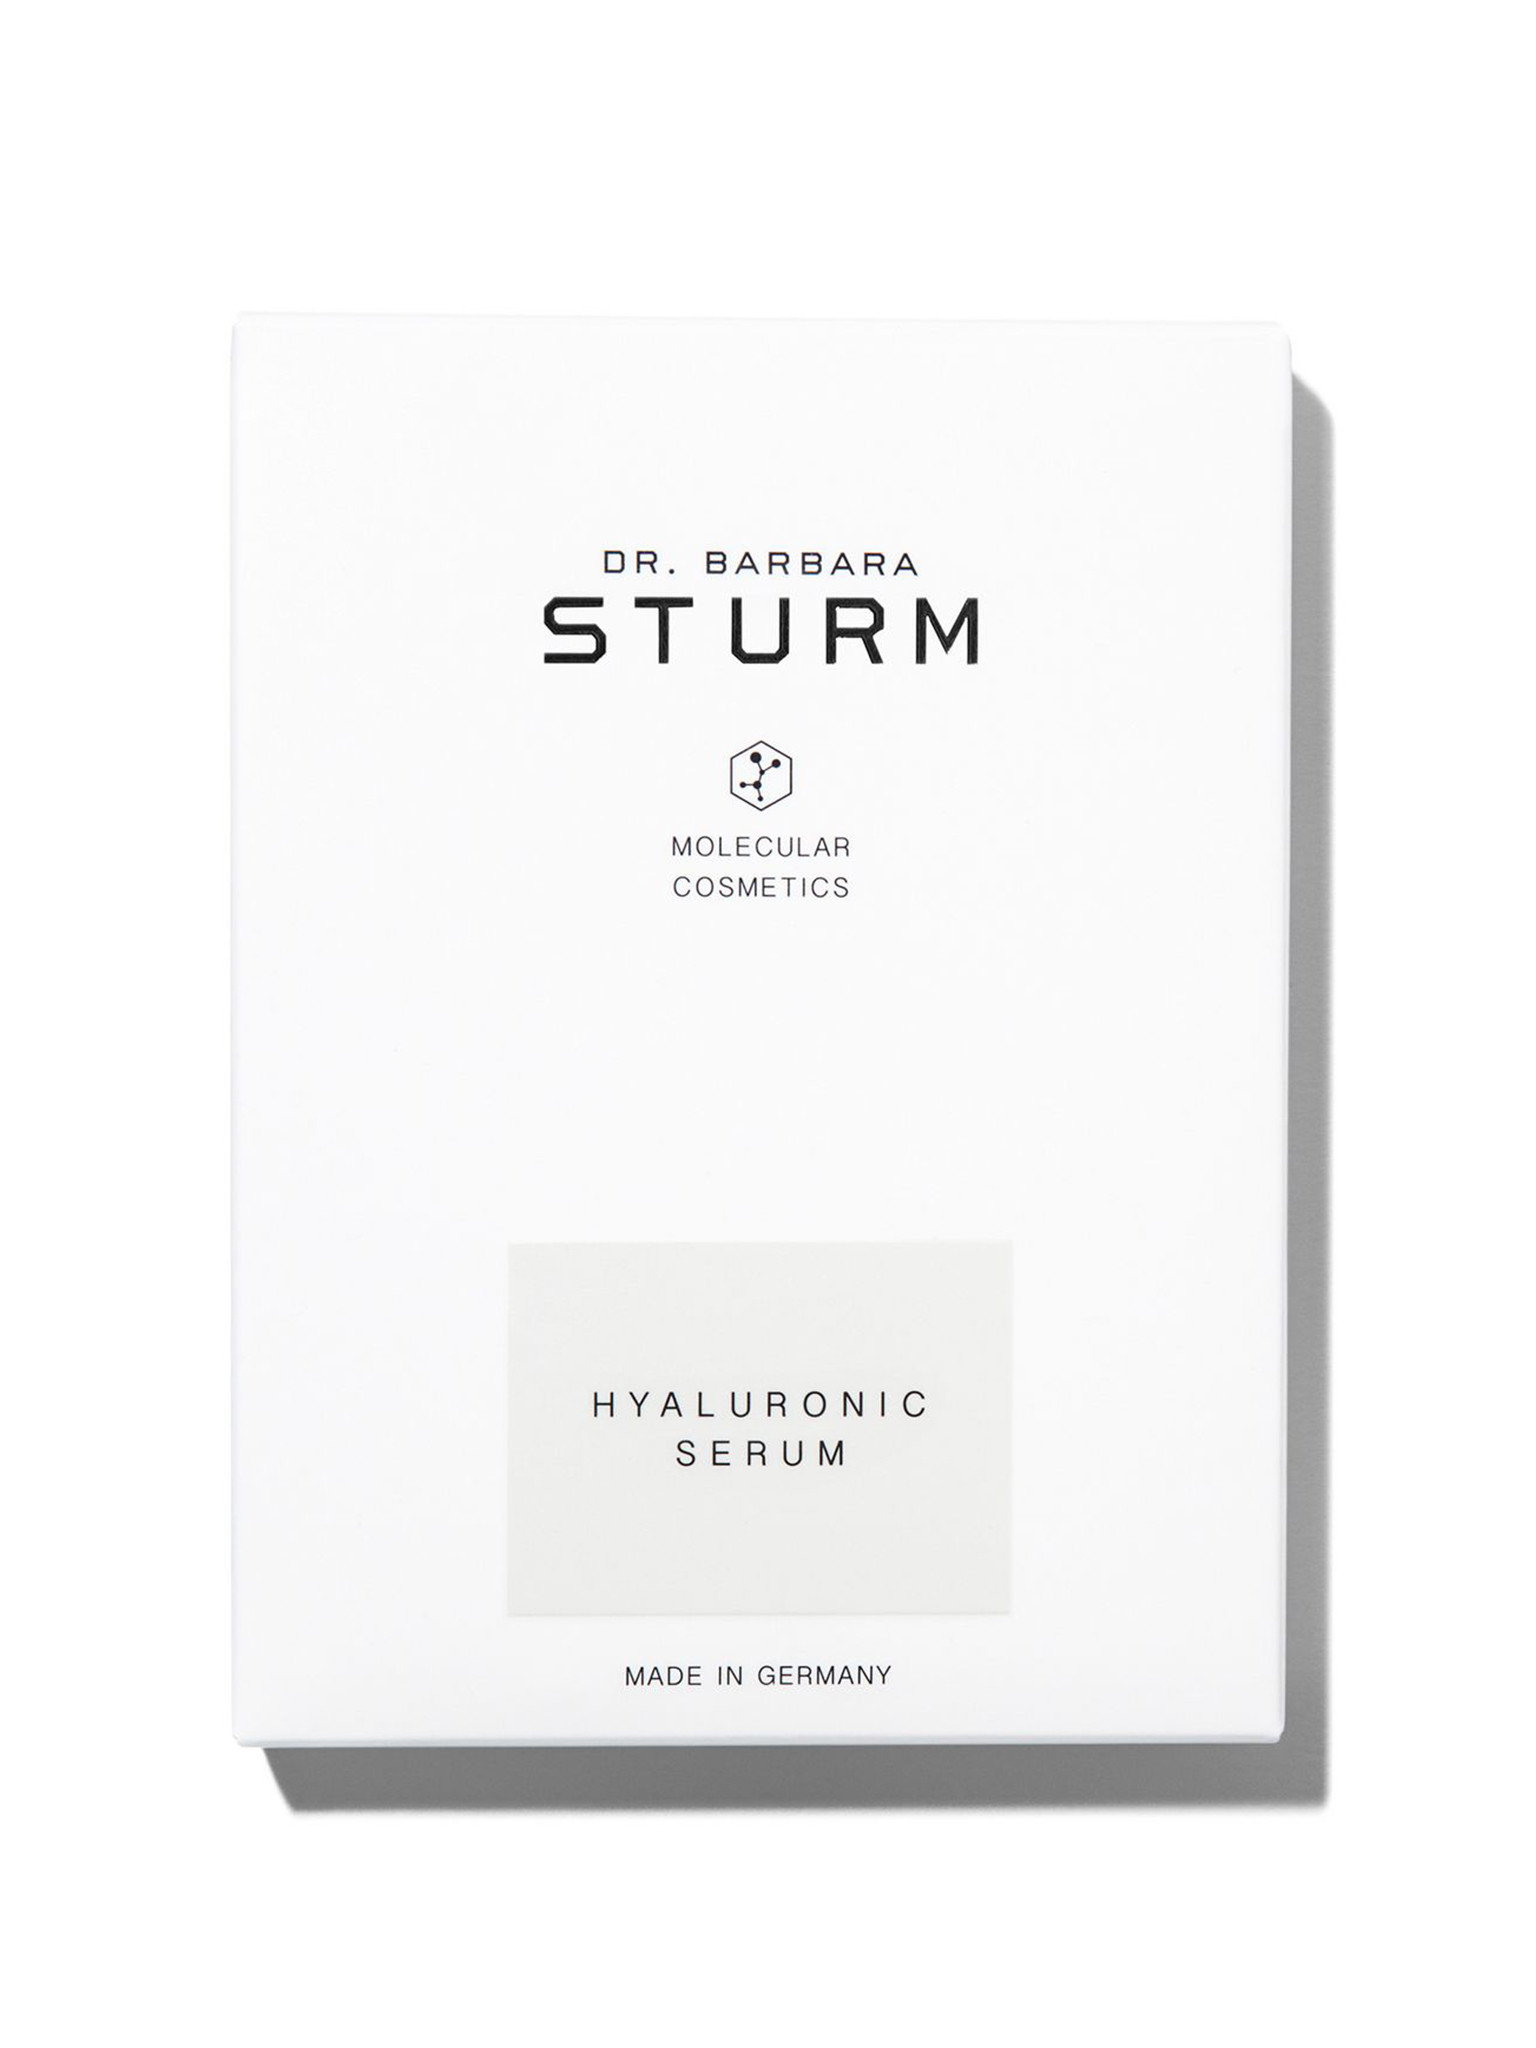 Superlative Hyaluronic Serum